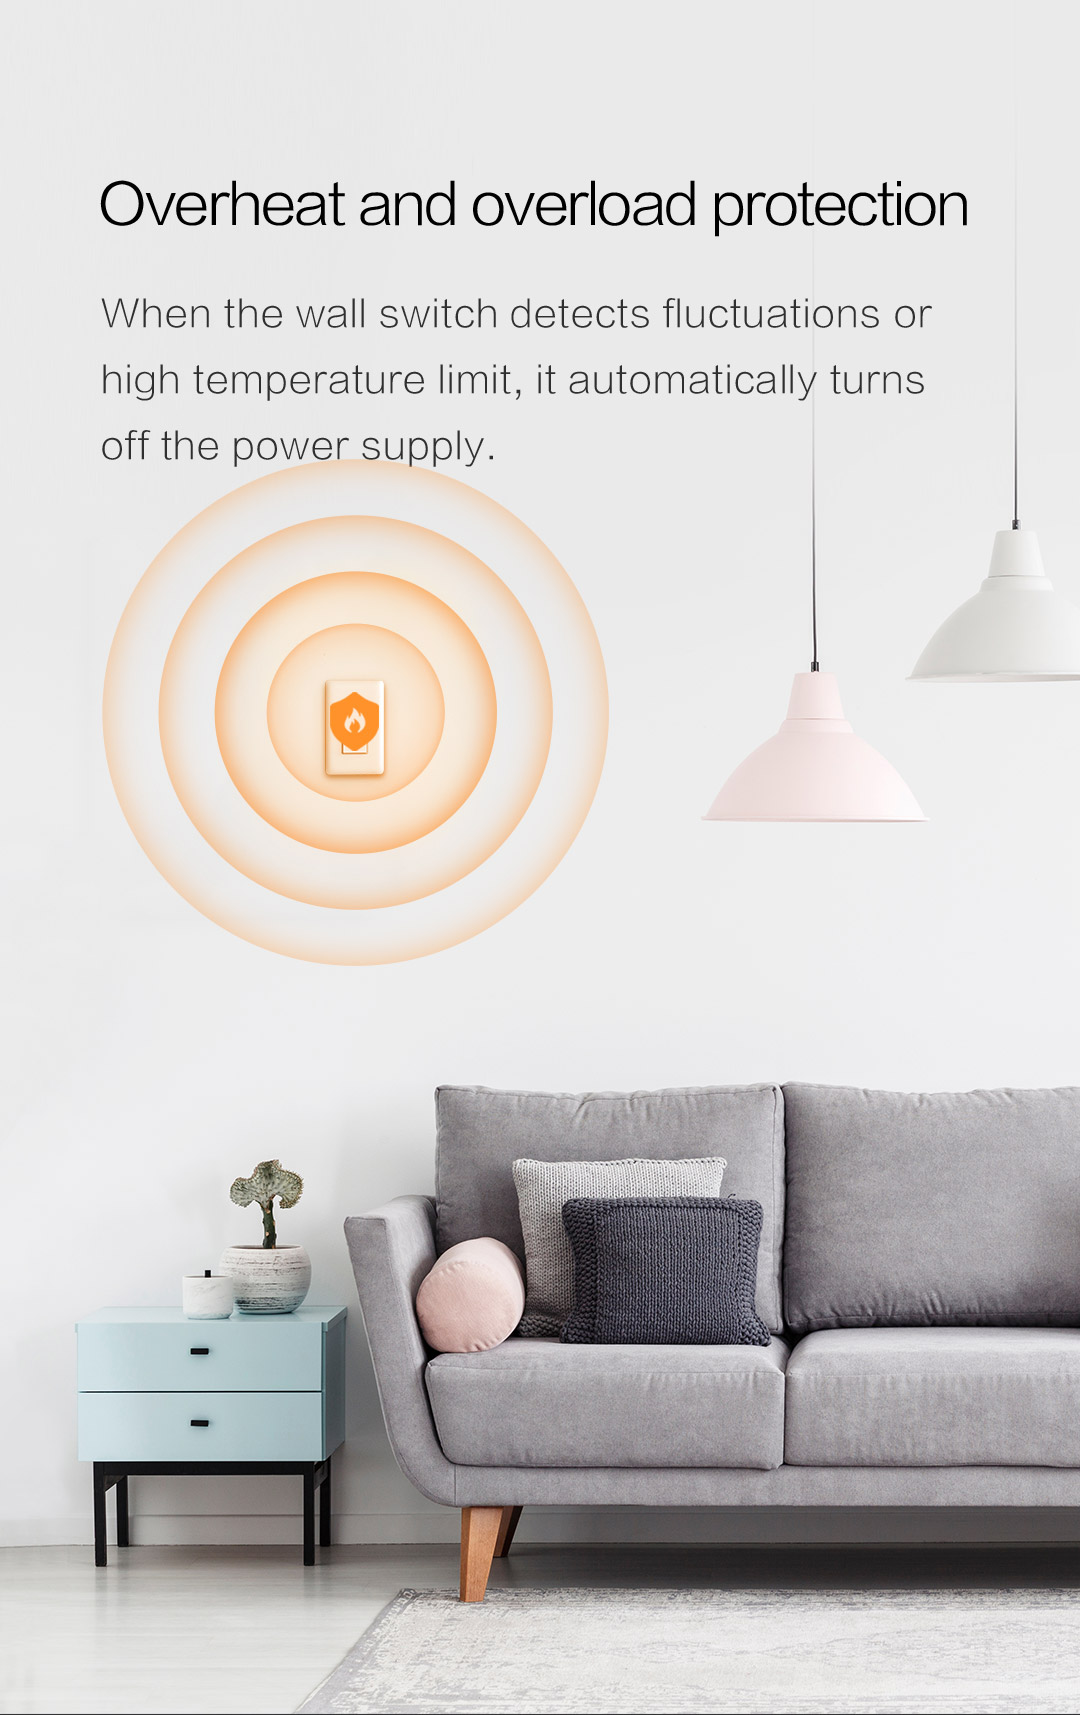 When our smart switch detects fluctuations or high temperature, it automatically turns off the power supply.